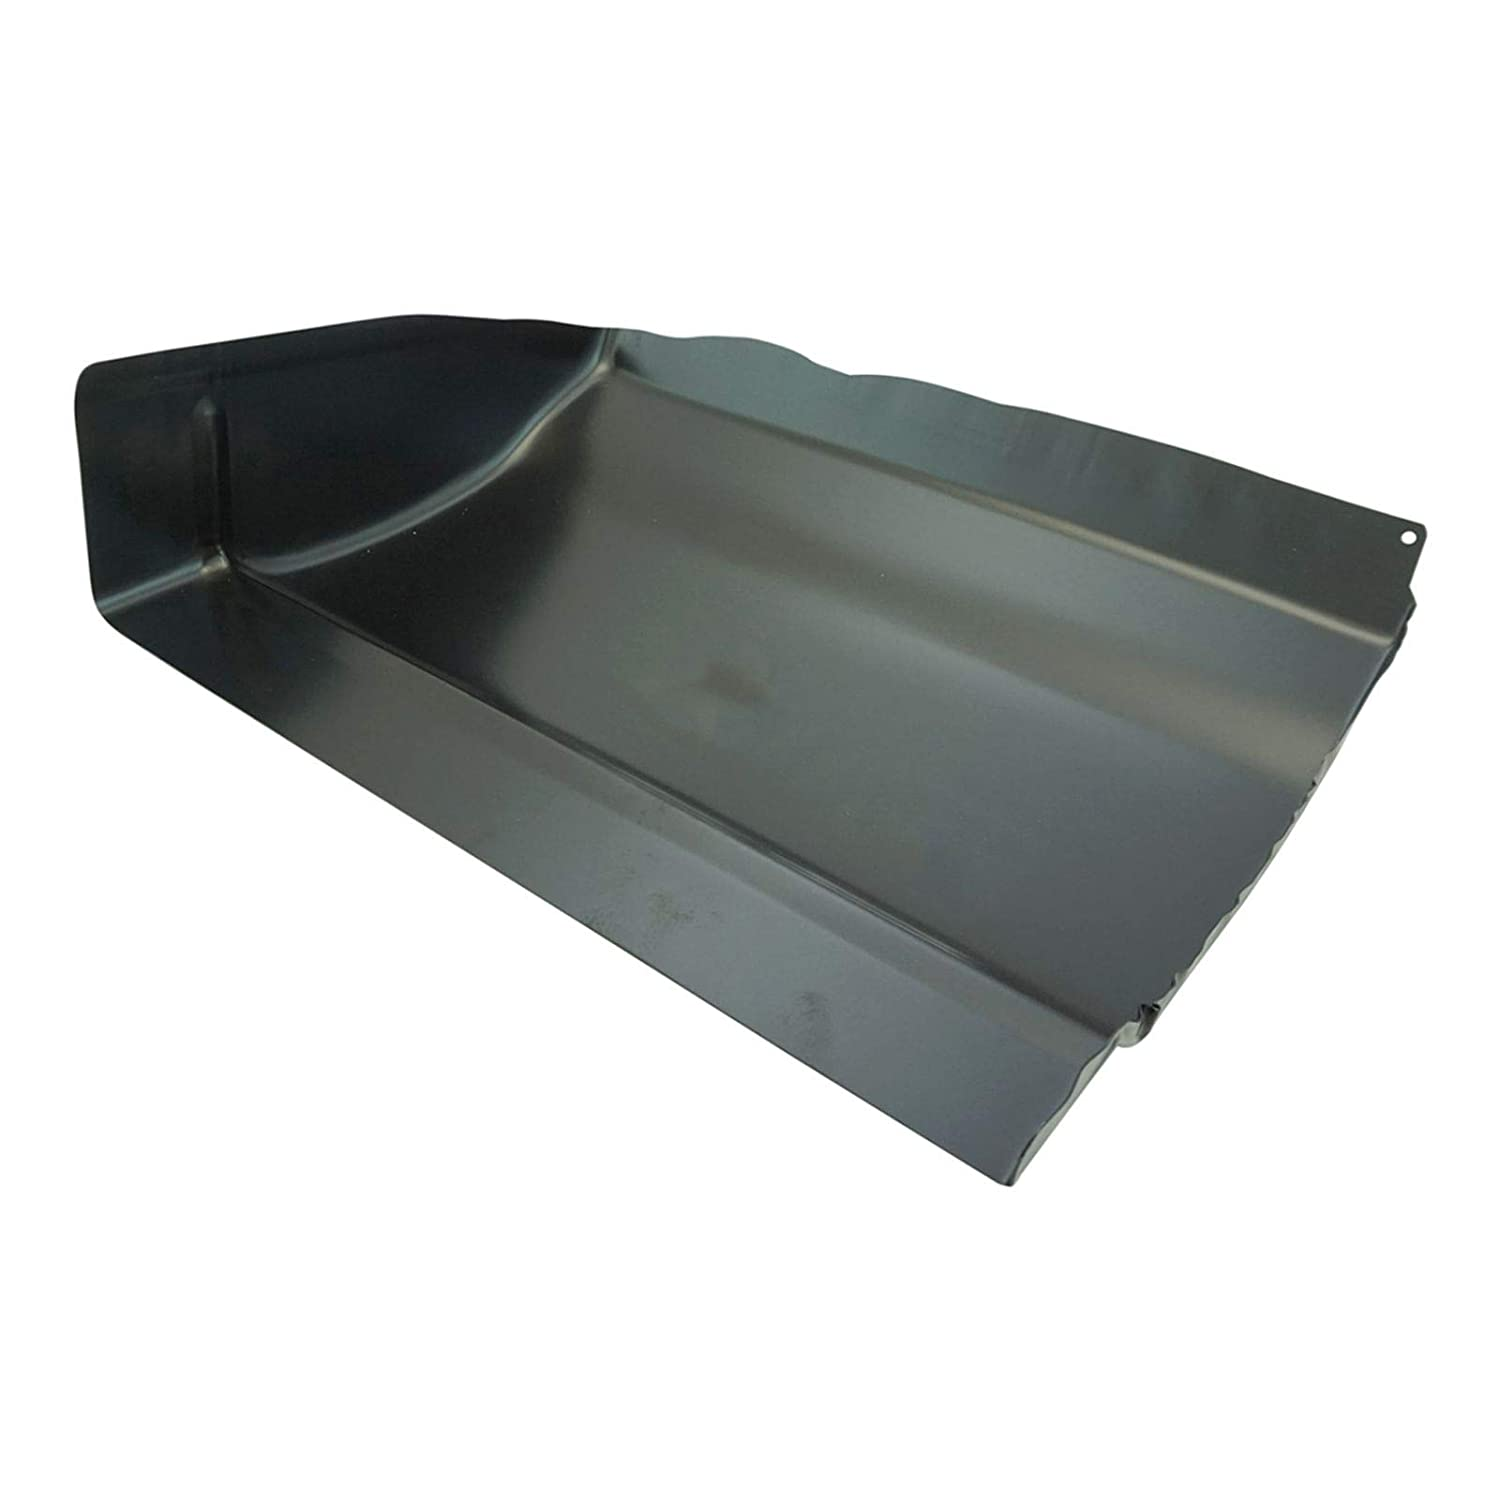 Corner Rust Repair Panel Extended Cab Rear Passenger Side for Chevy S10 GMC S15